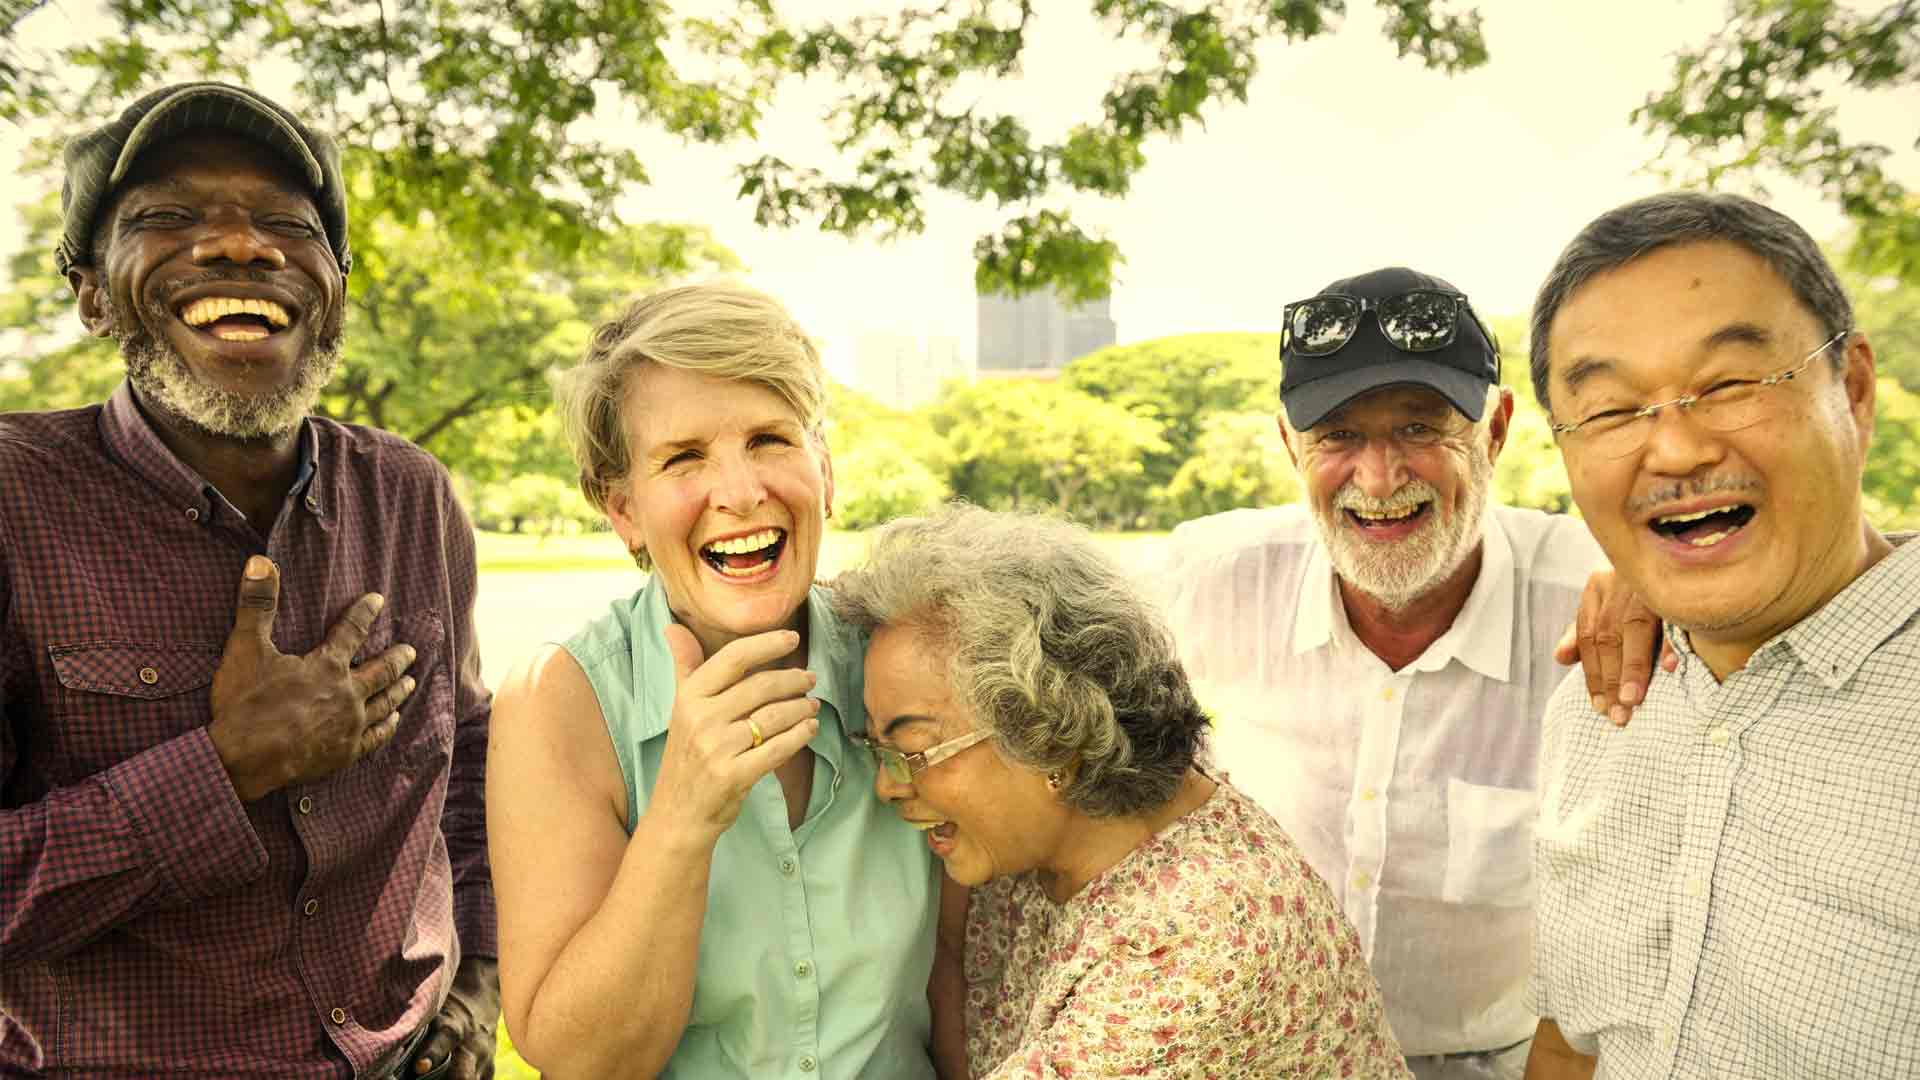 older-folks-having-a-fun-time-hanging-out